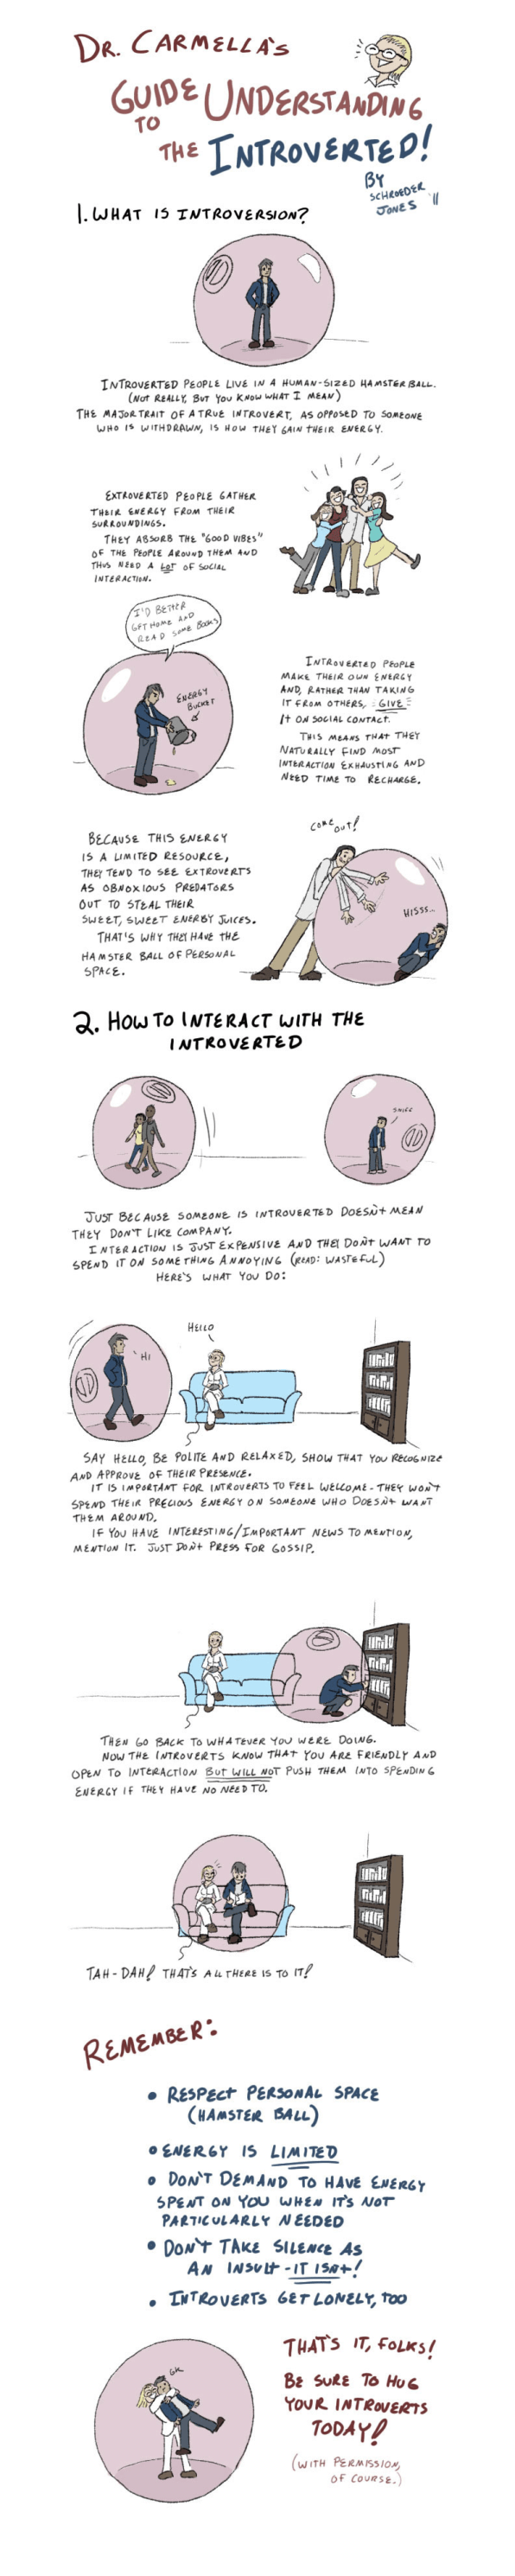 Your Guide To Interacting With An Introvert